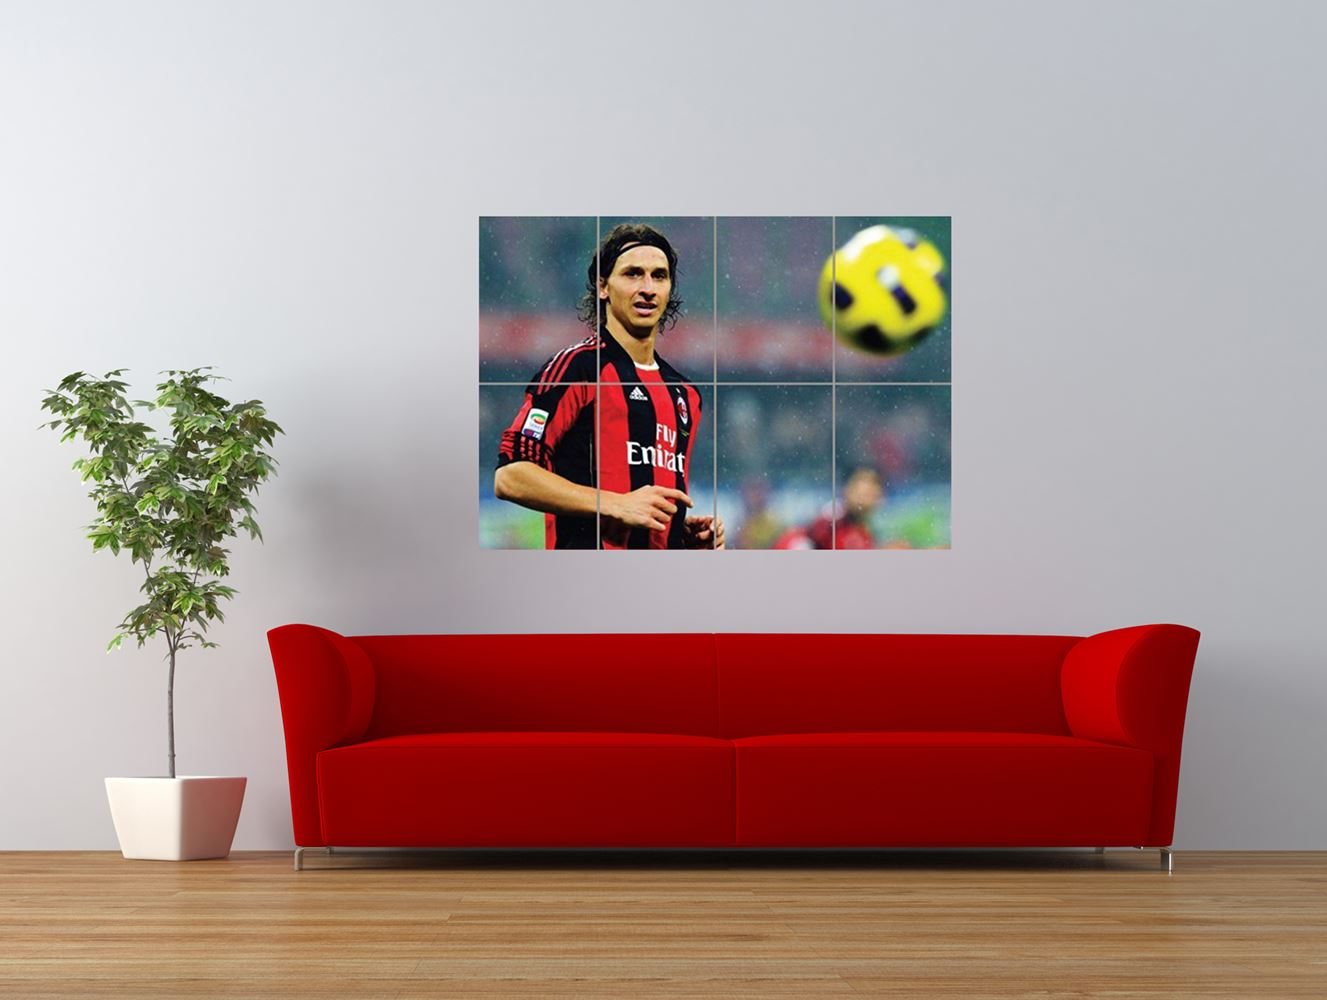 zlatan ibrahimovic ac milan sport football giant art print panel poster nor0561. Black Bedroom Furniture Sets. Home Design Ideas